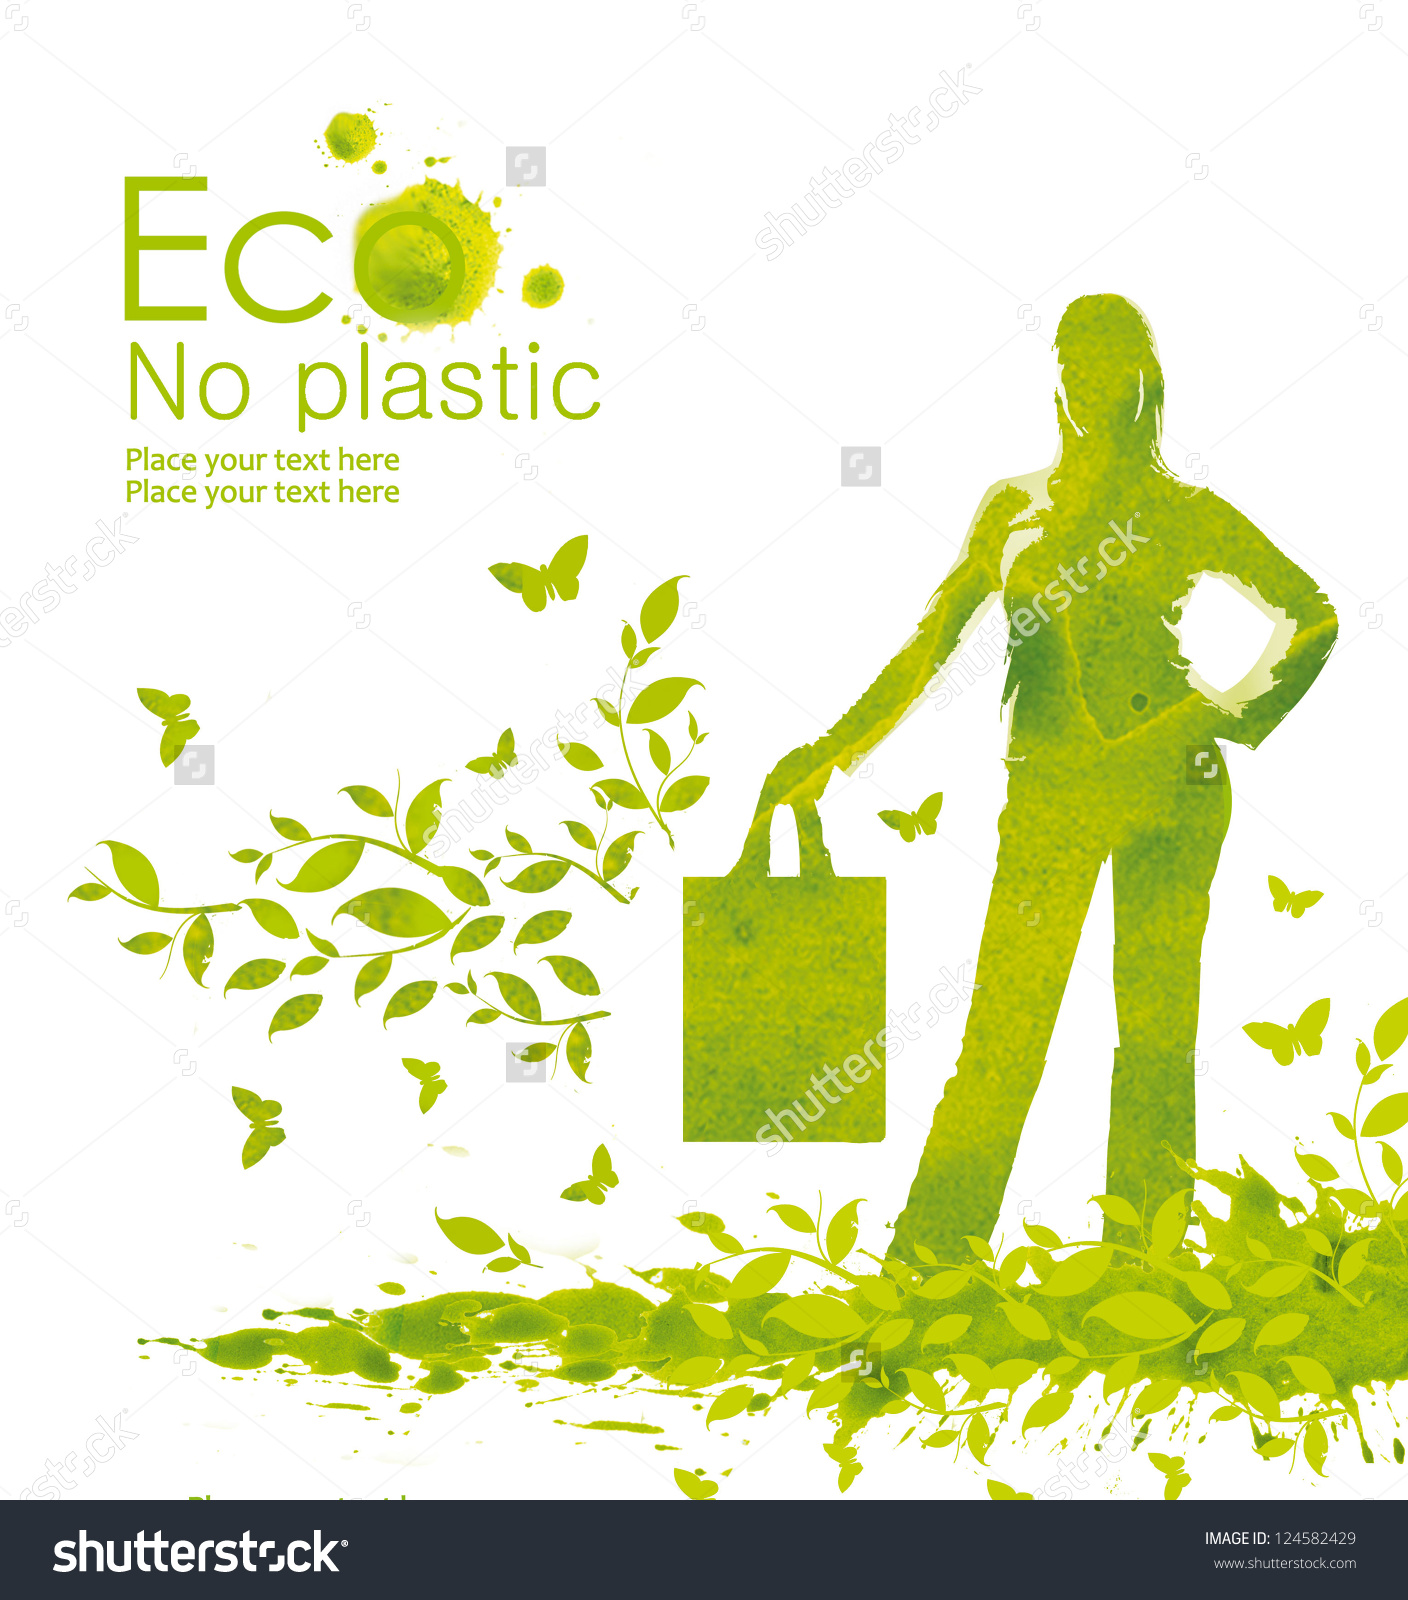 Environmentally sound clipart 20 free Cliparts | Download images on